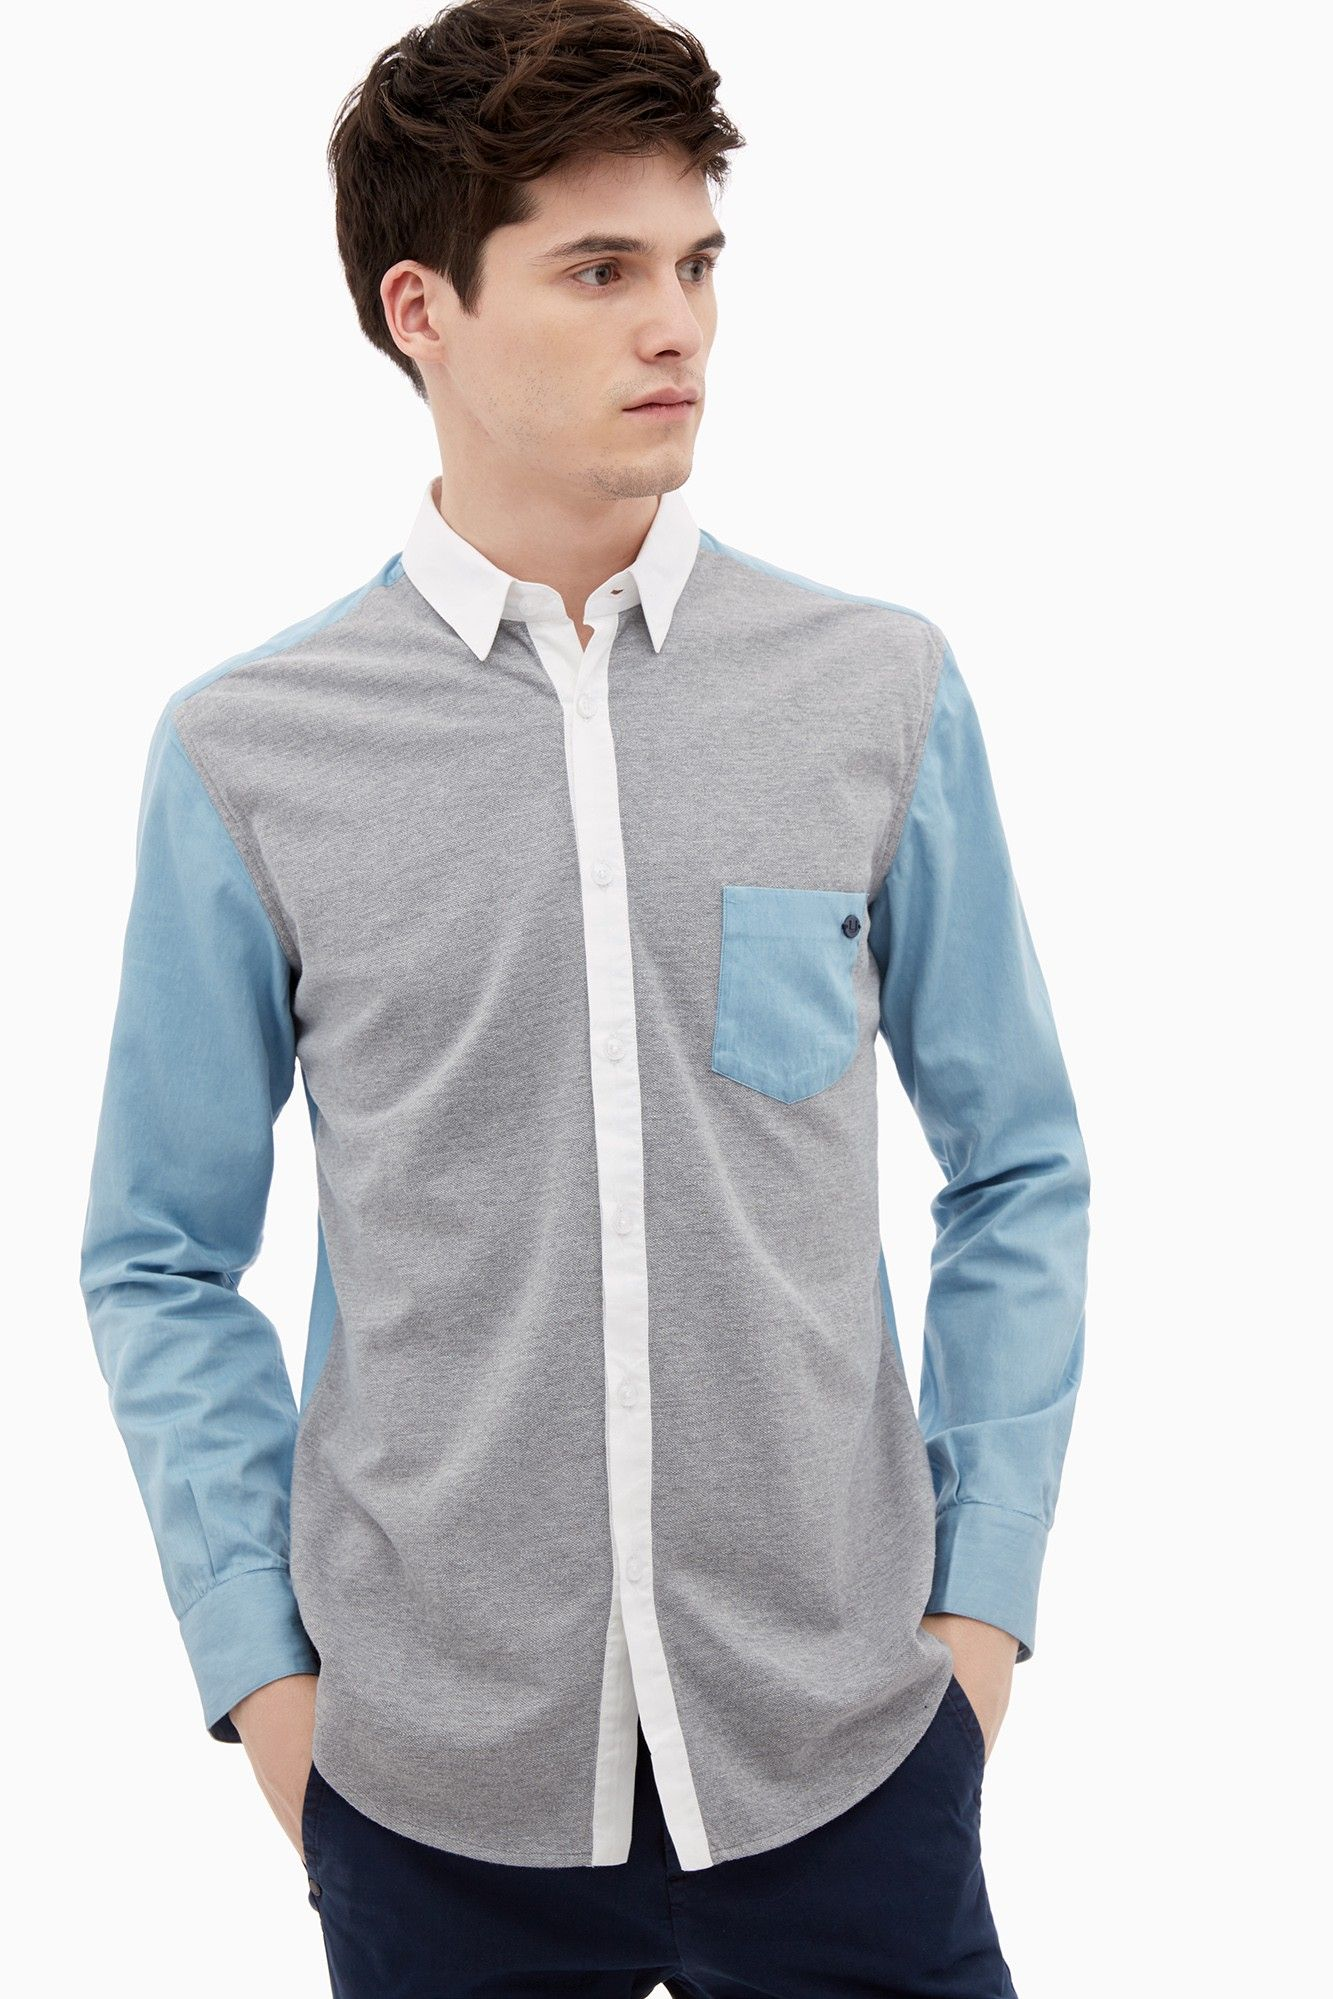 Cotton Jersey And Chambray Shirt - shirts   Adolfo Dominguez shop online